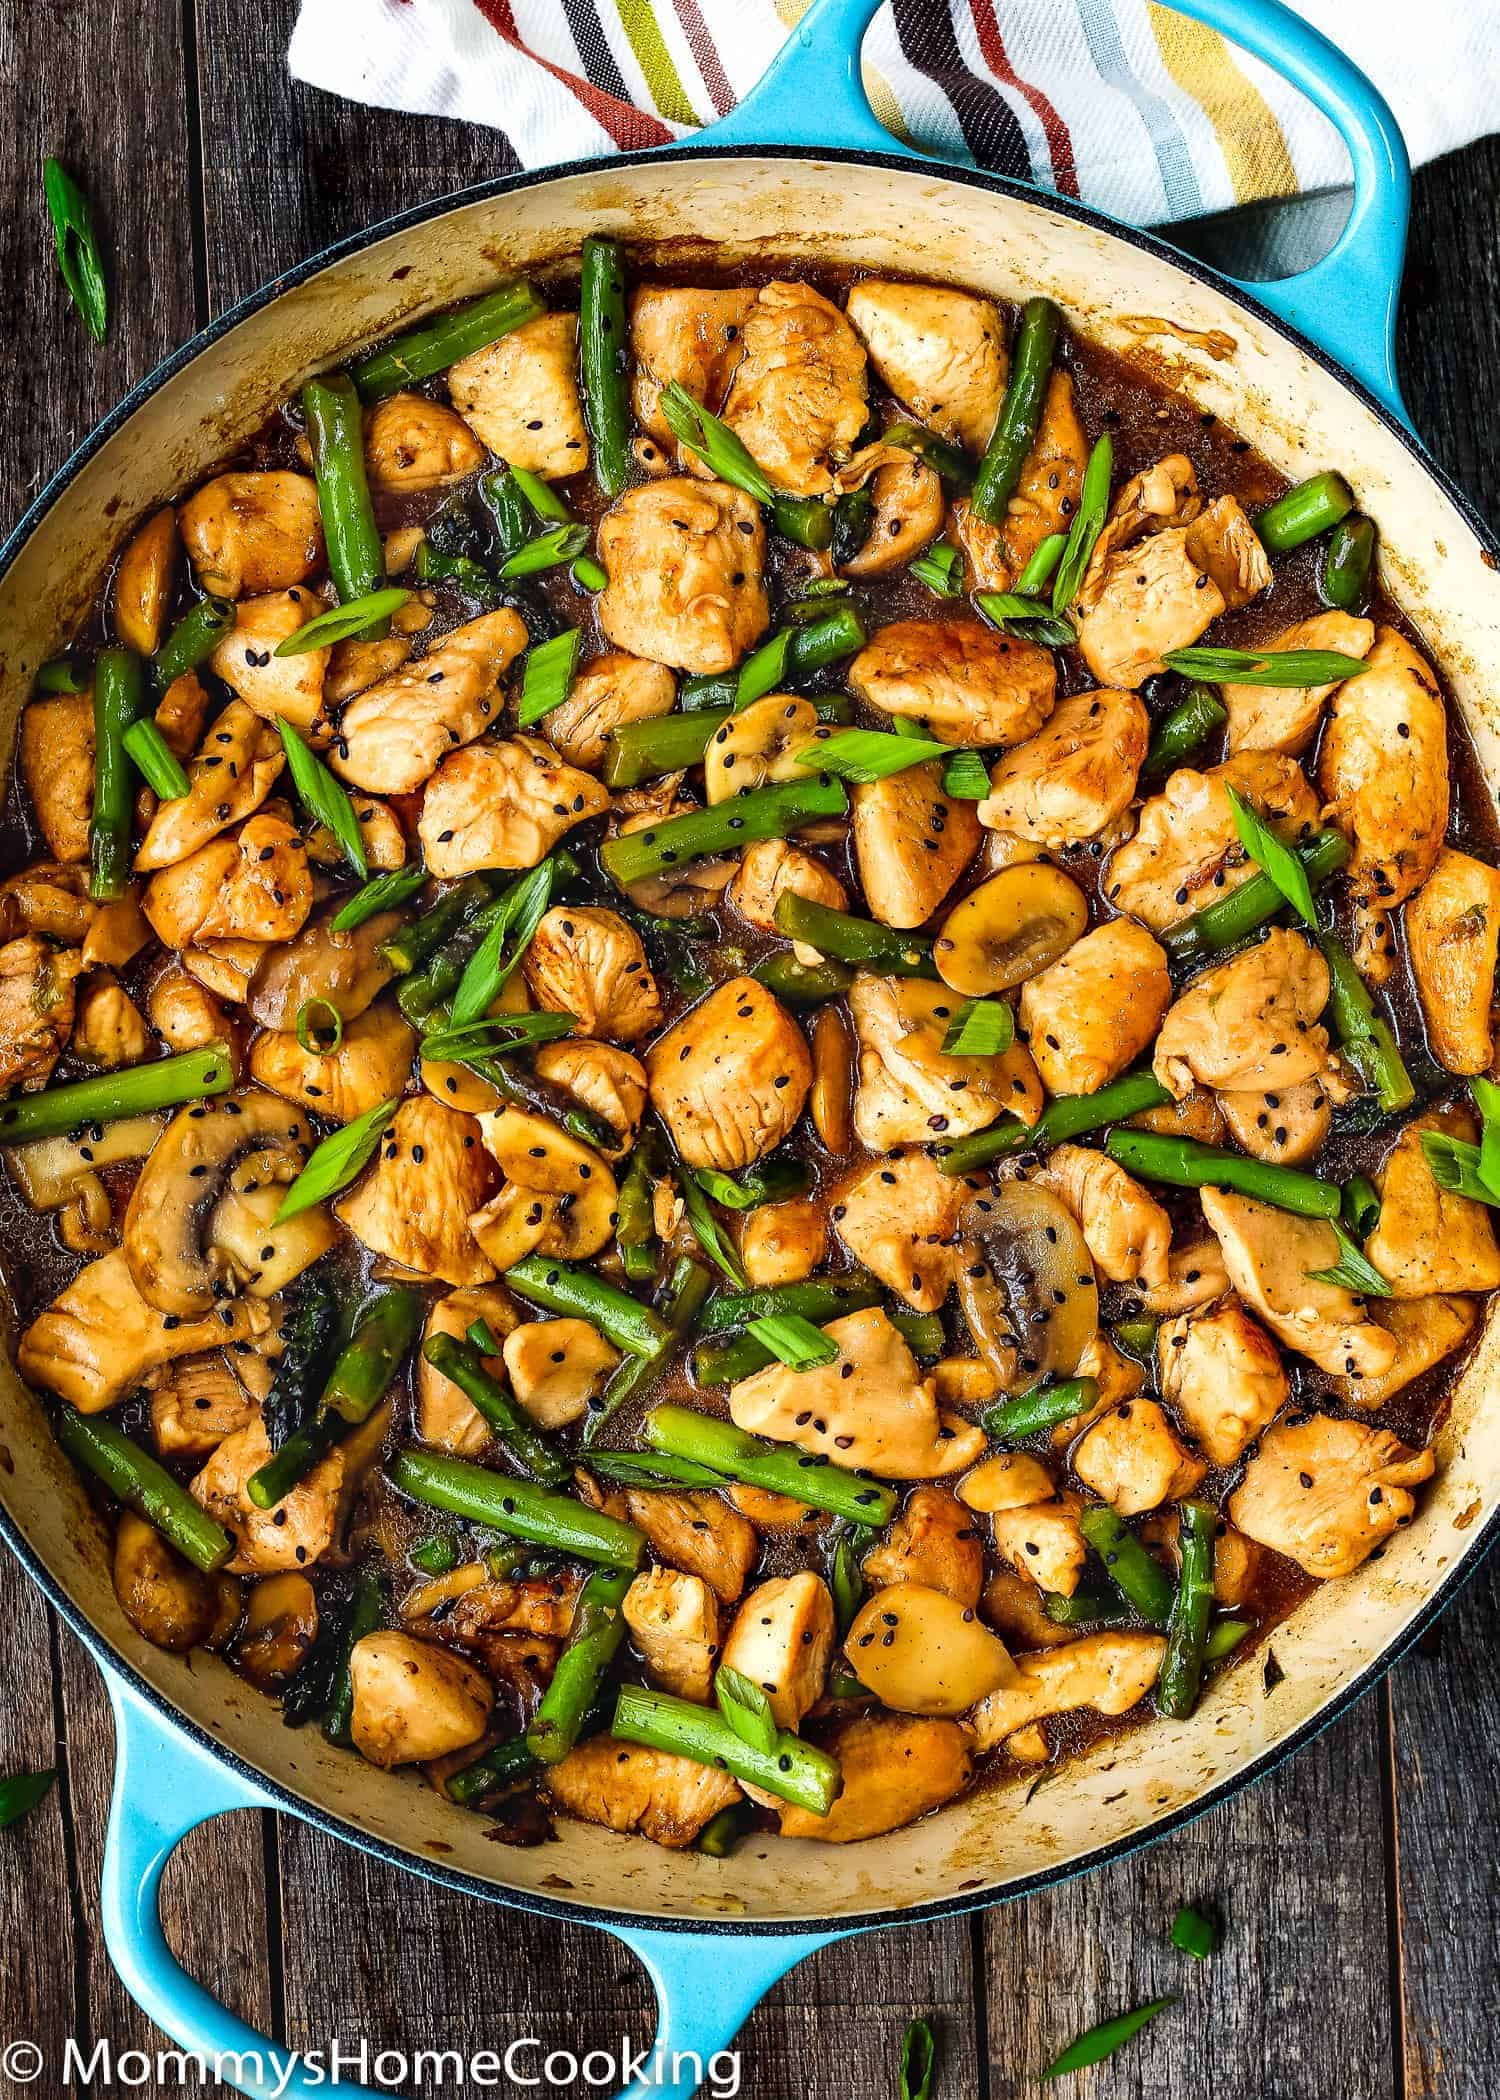 This Easy Healthy Chicken And Asparagus Skillet Recipe Is Quick Delicious And Satisfying Its